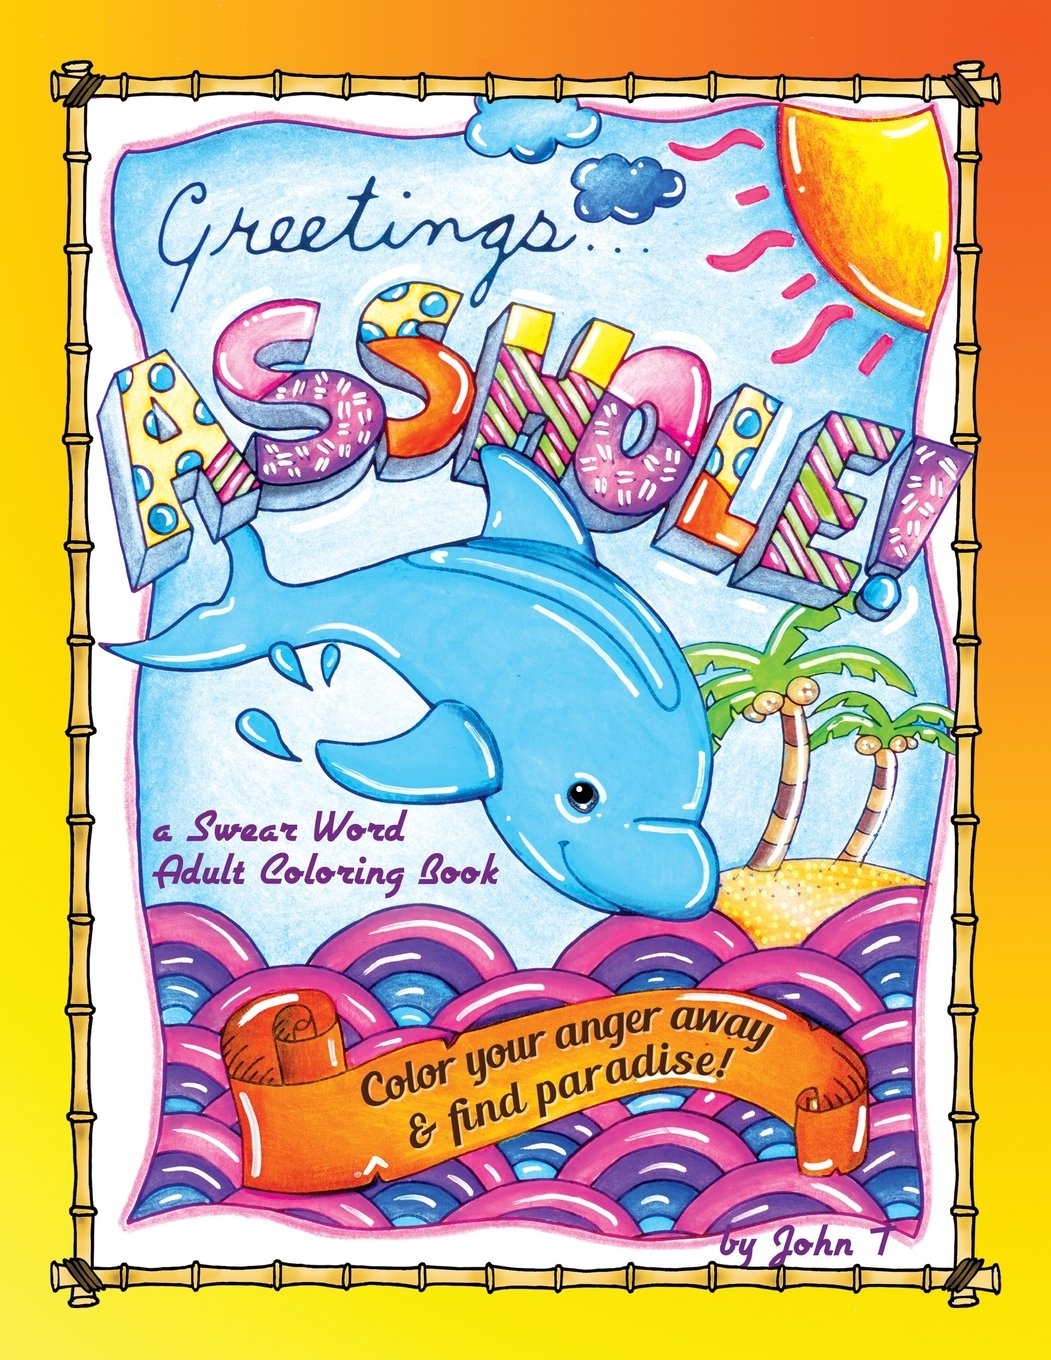 Greetings Asshole Swear Adult Coloring product image